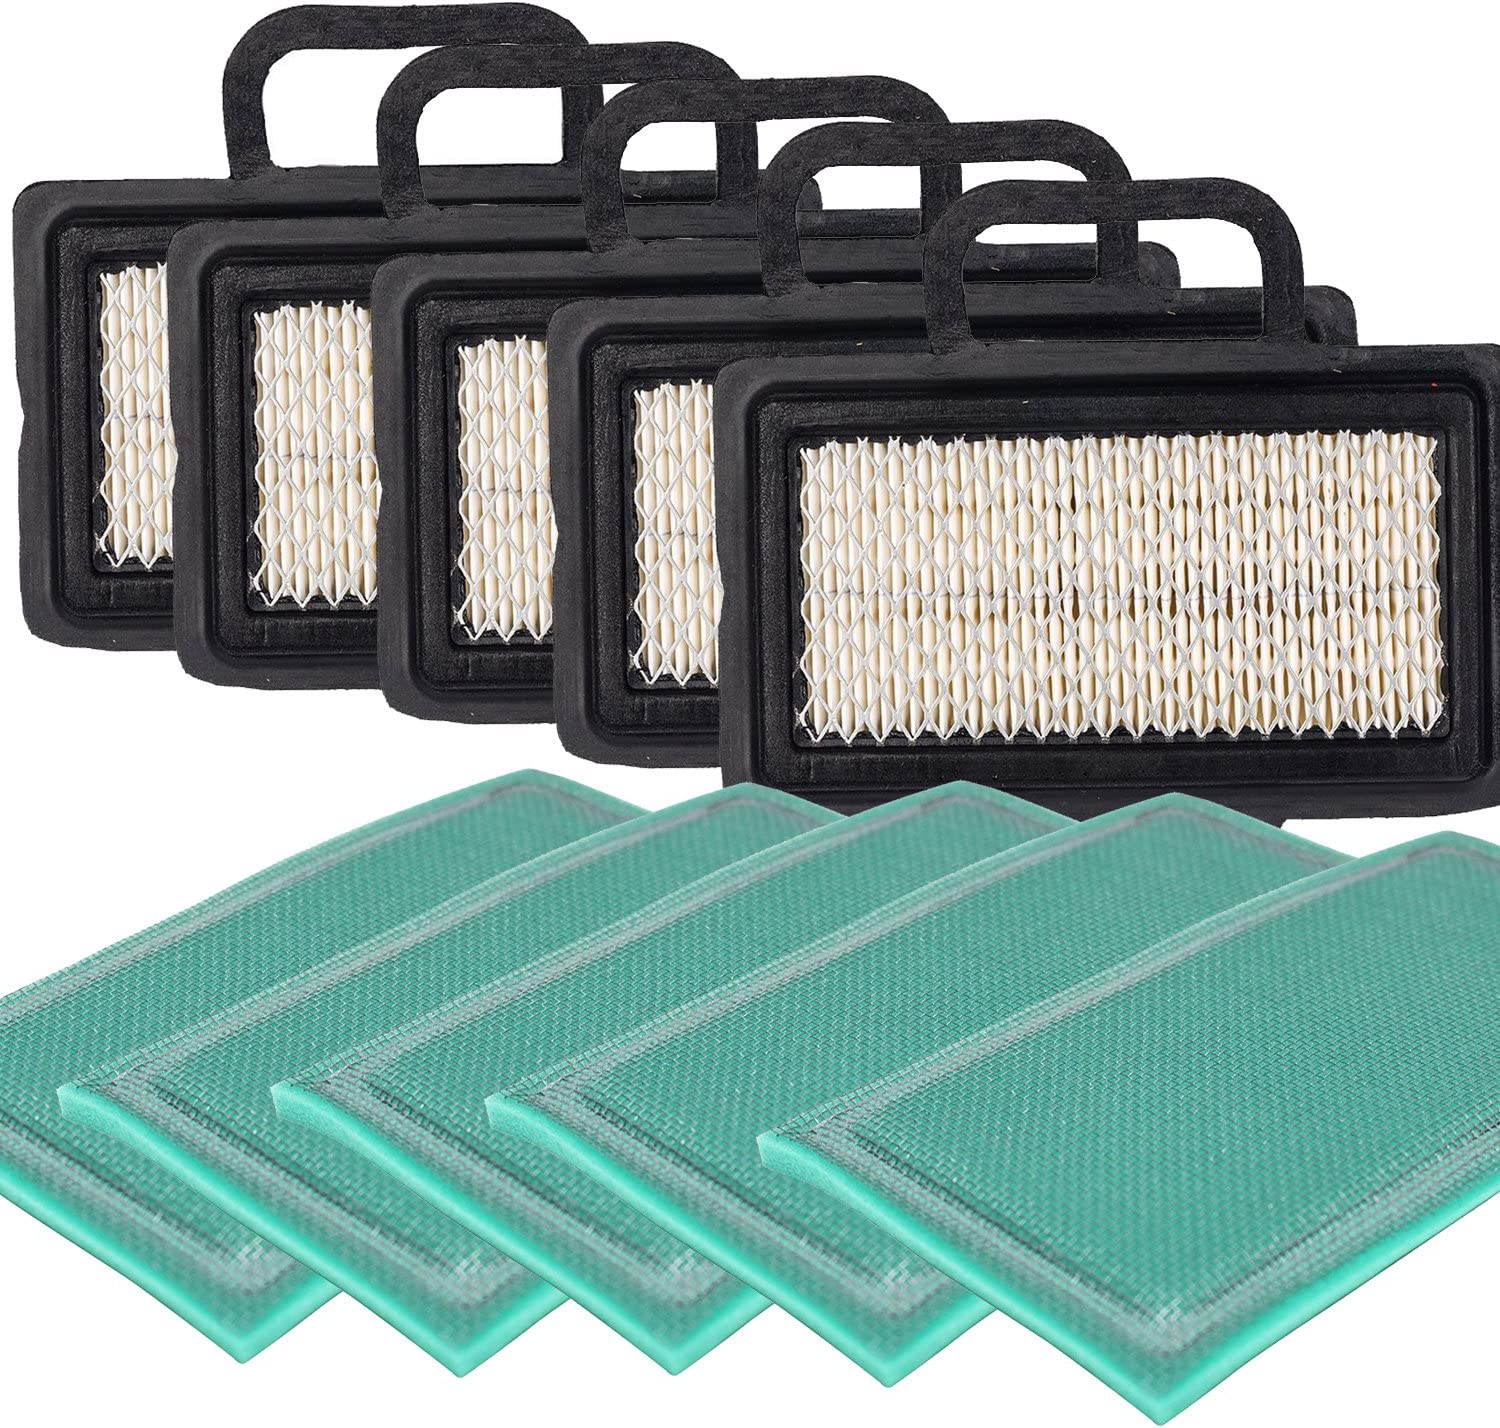 Pack of 1 OxoxO Flat Air Filter Pre Filter for Briggs /& Stratton 792101 273638S 672772 671231 5408 5408H 273238 Replacement fits Intek V-Twin engines 16-27 HP